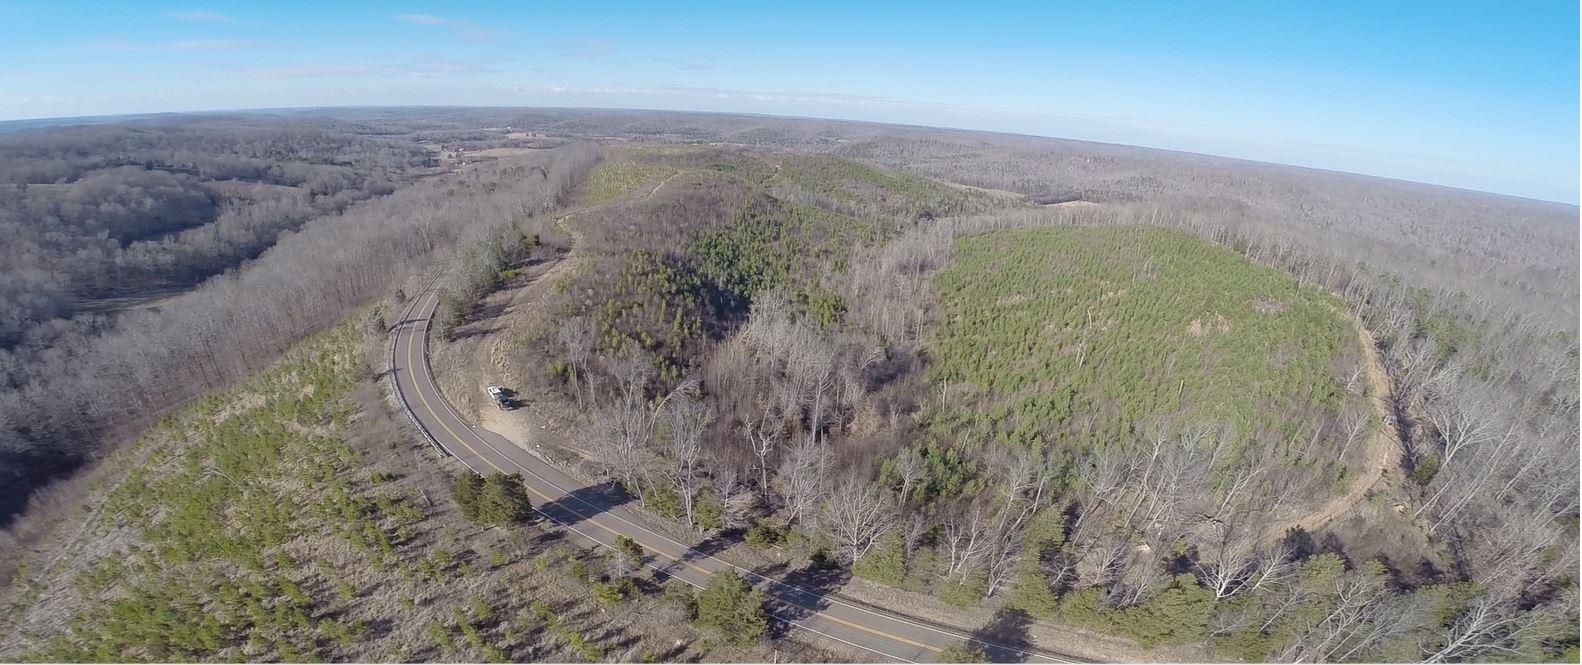 0 Hwy 128, Linden, TN 37096 - Linden, TN real estate listing